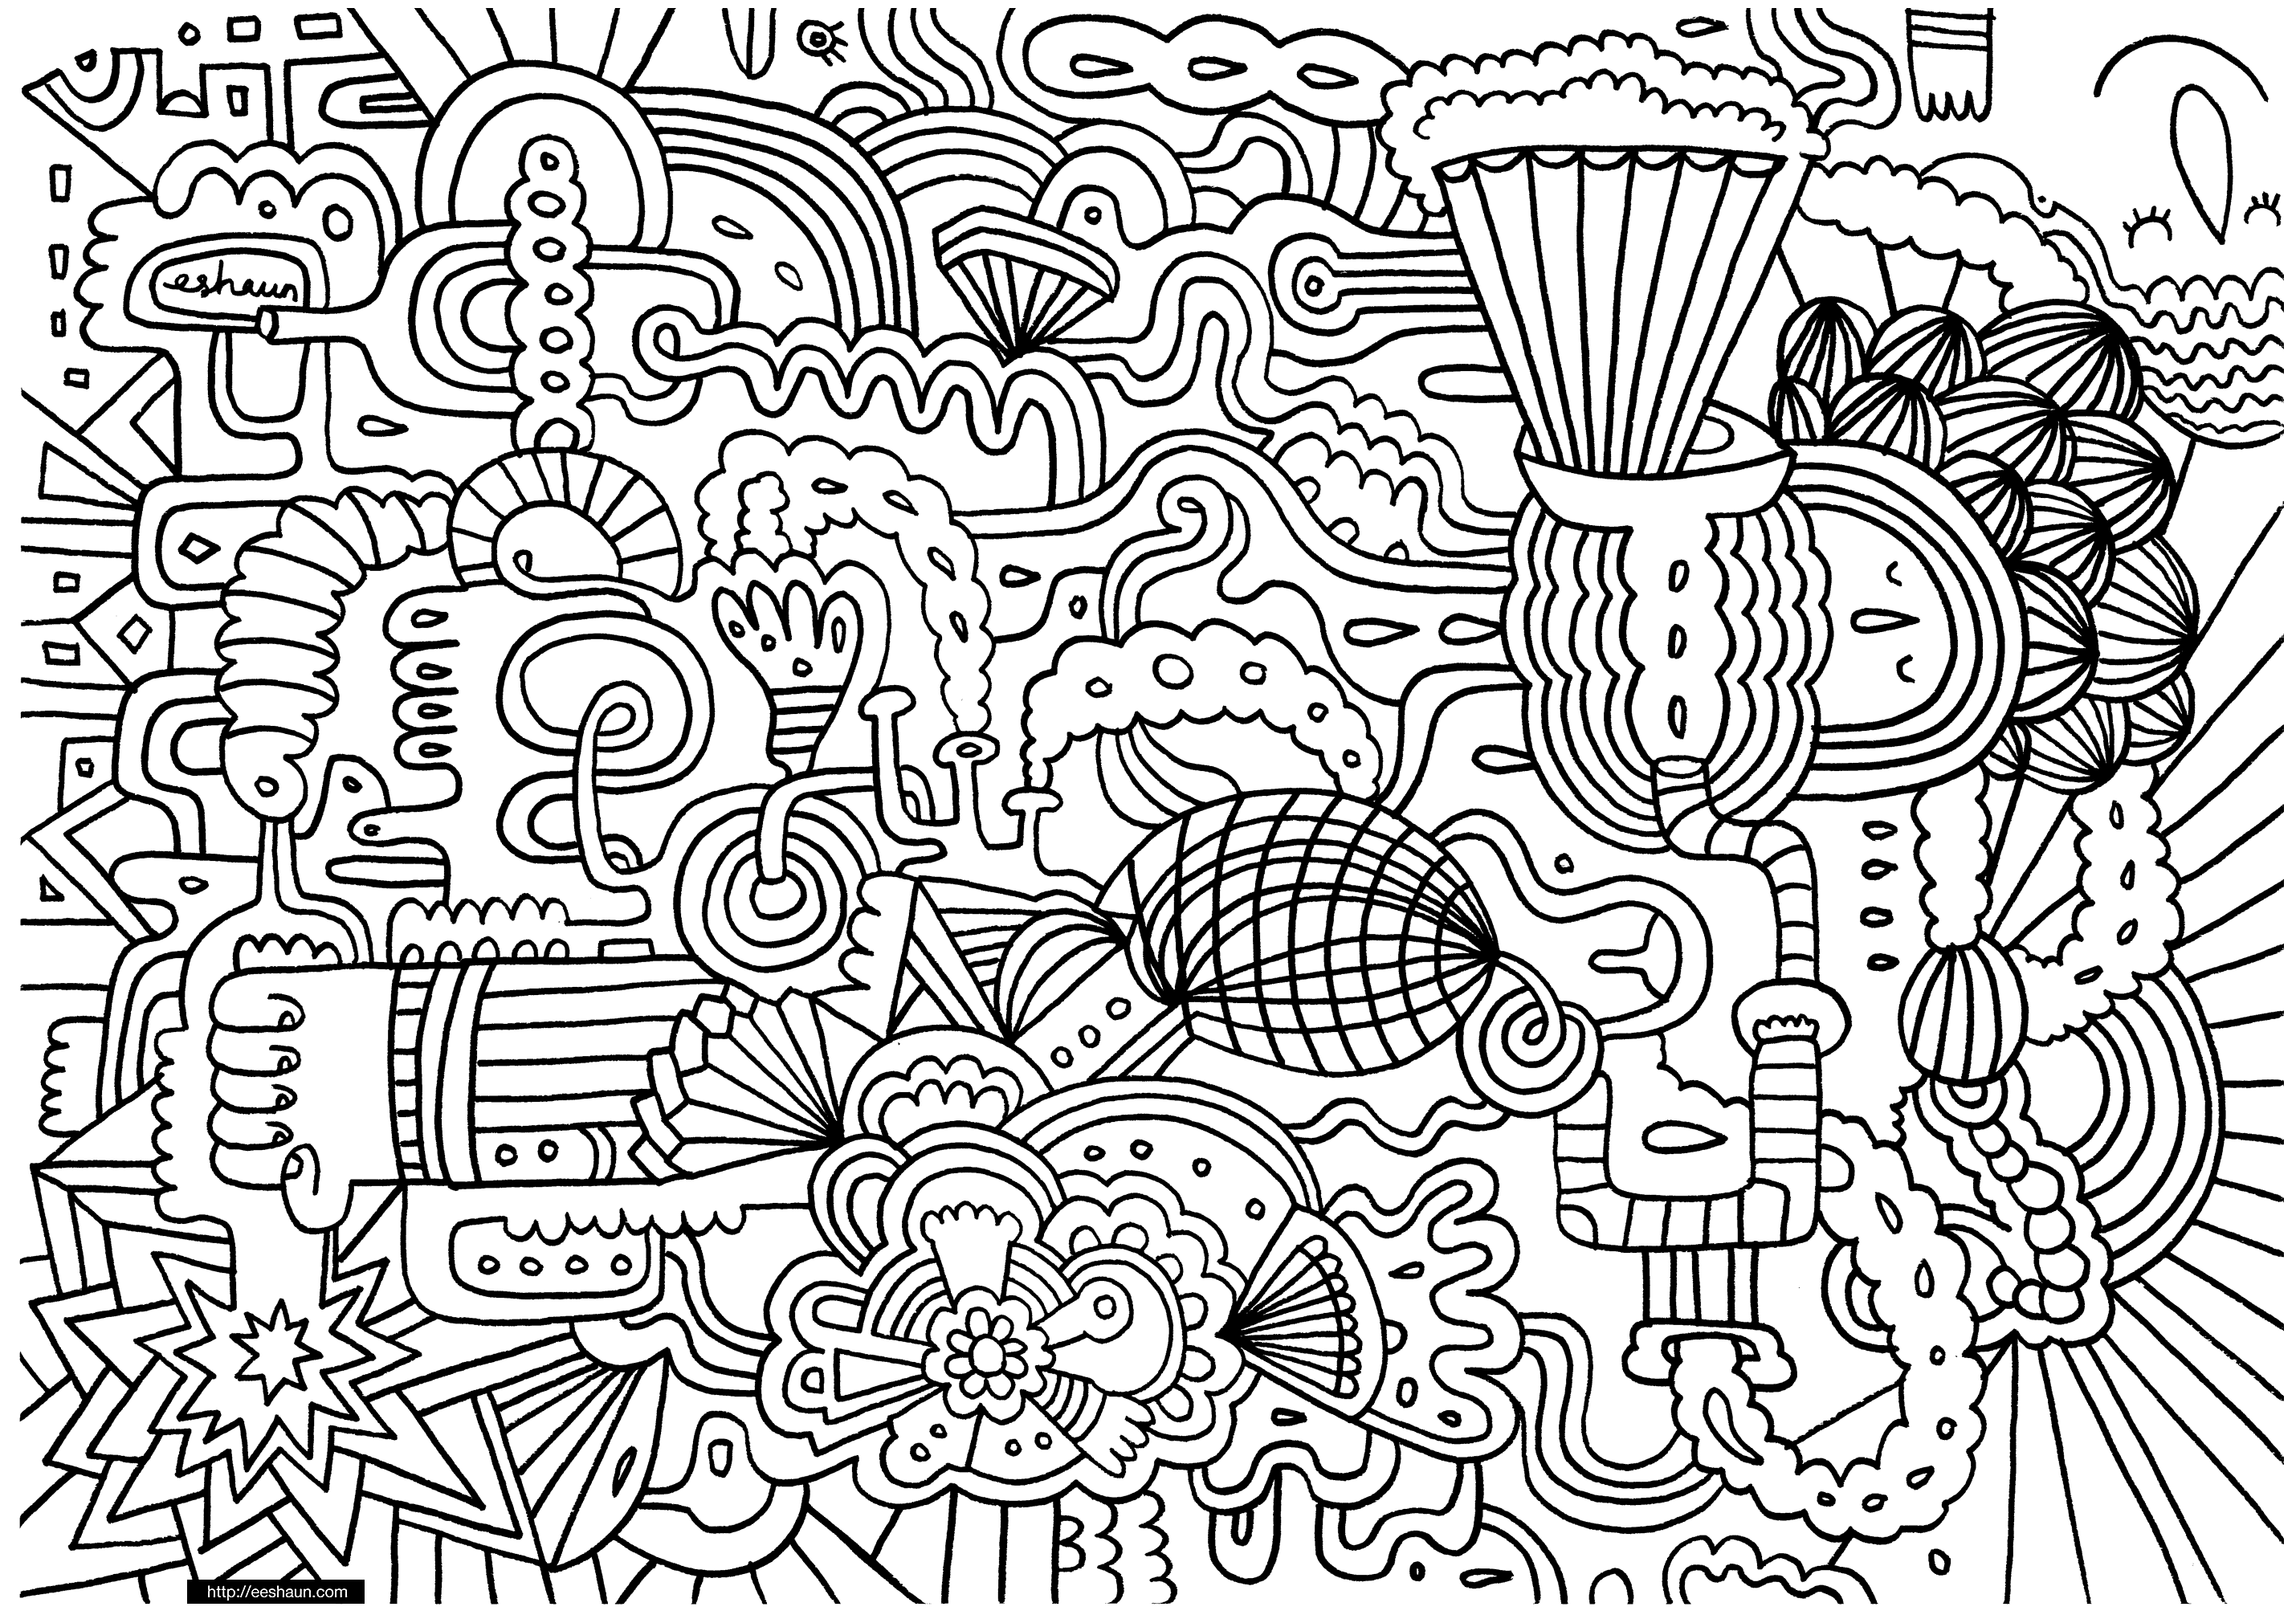 Free Coloring Page Coloring-doodle-art-doodling-1 A Doodle